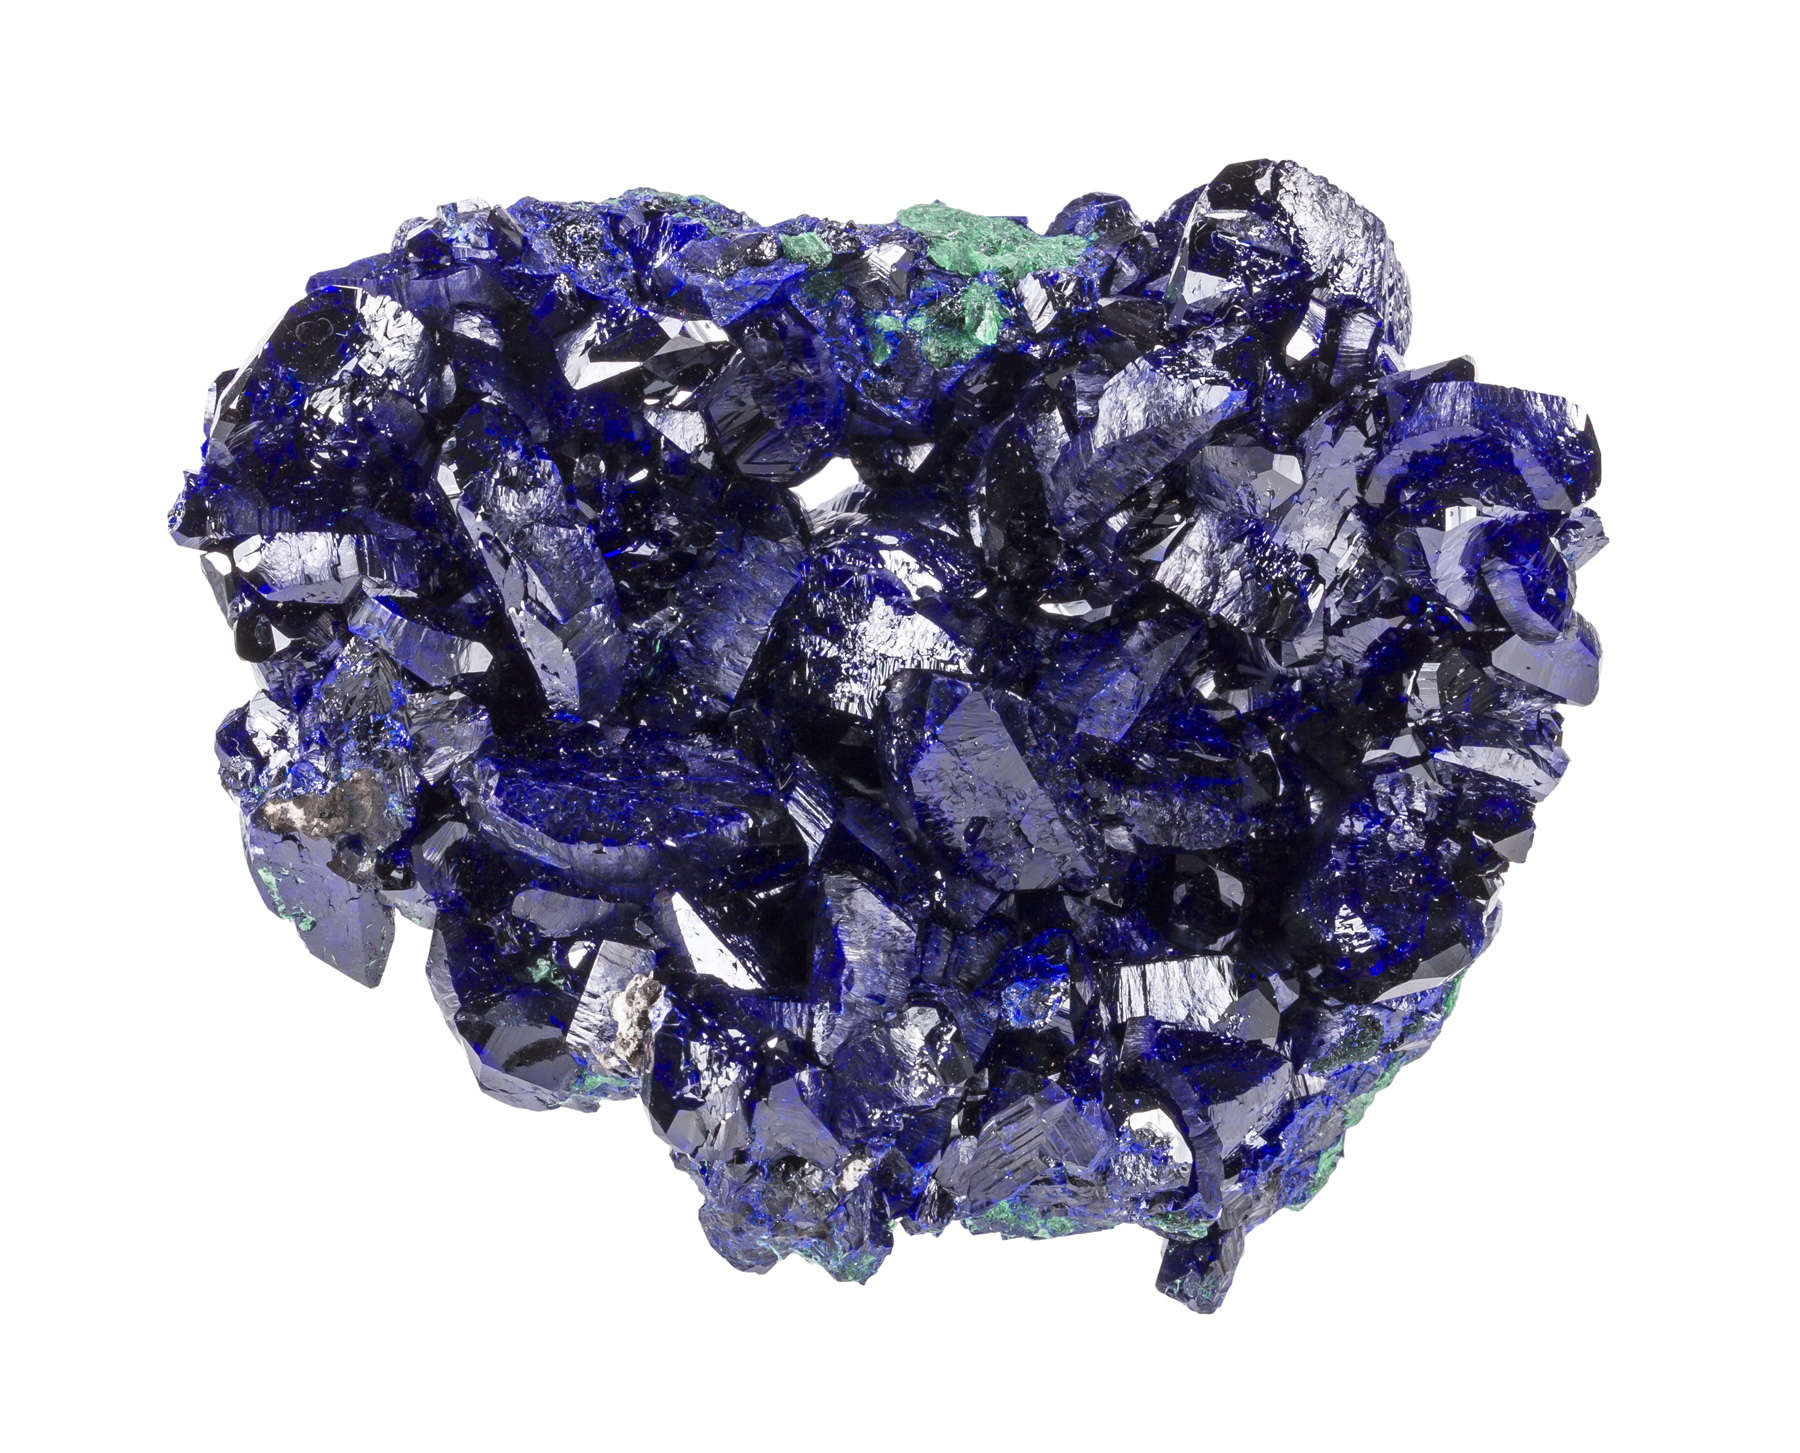 This piece bigger cleaner crystals lot exceptional deep blue color